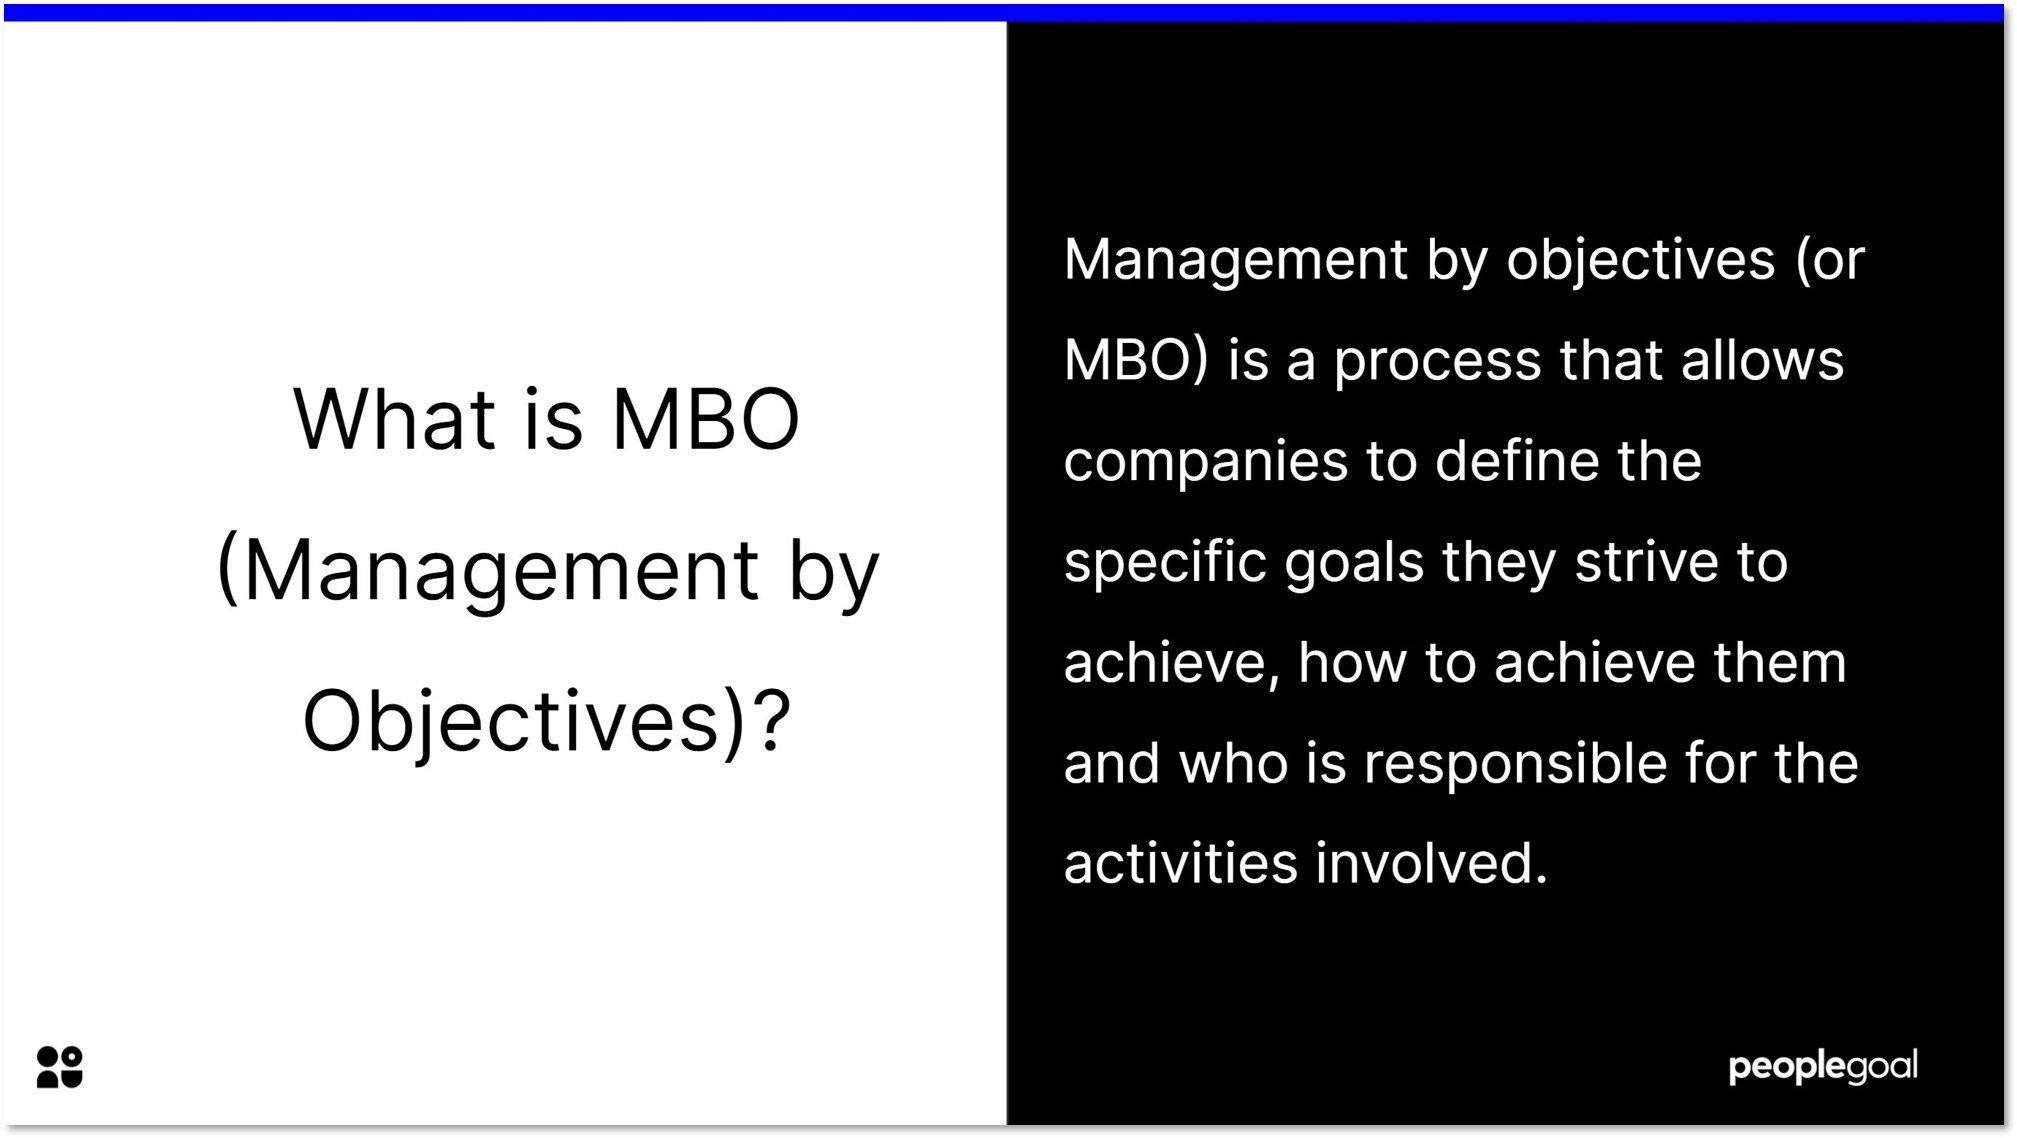 What is management by objectives